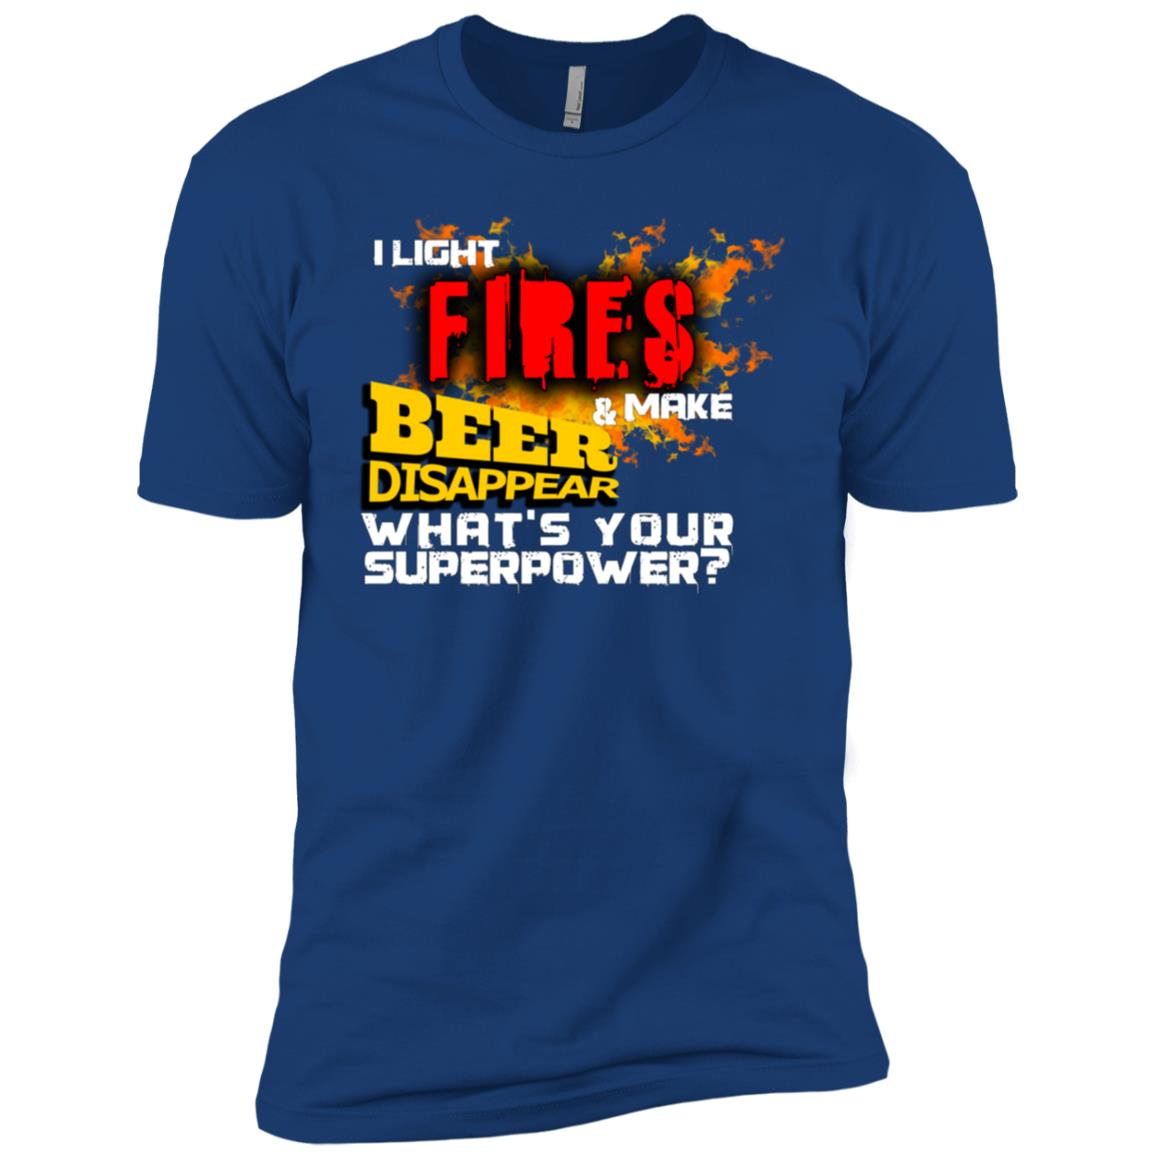 I Light Fires And Make Beer Disappear Camping-1 Men Short Sleeve T-Shirt